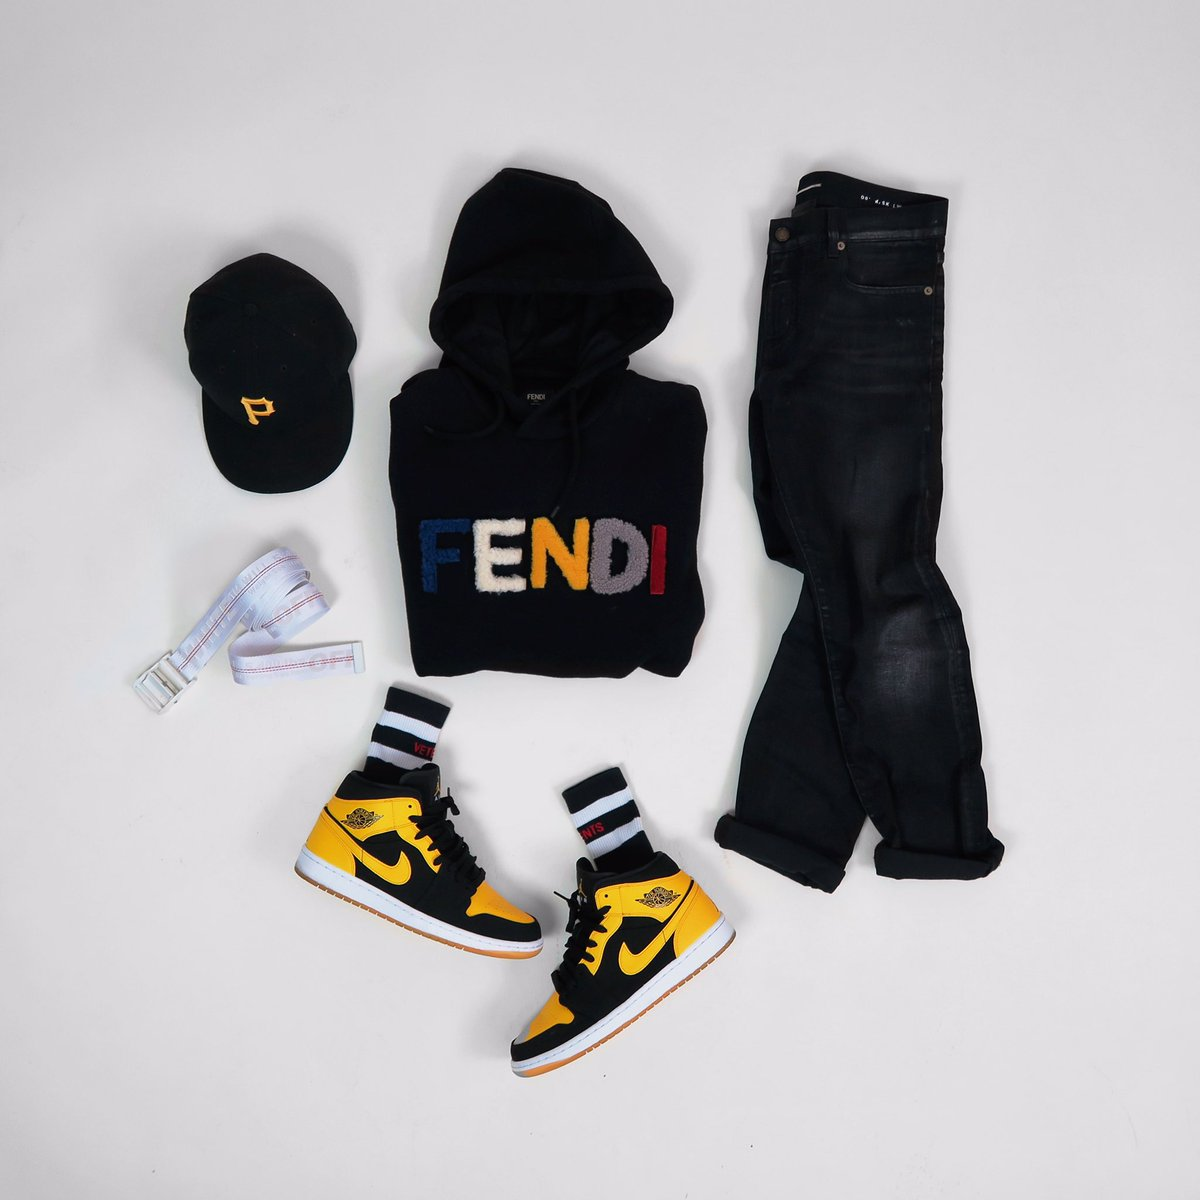 A level of it&#39;s own  #outfitgrid - #FendiFW17 #fendi #jordan1 #vetements #offwhite #saintlaurent #menstylist #menstyle #fashionformen<br>http://pic.twitter.com/Y7qfYafiYS